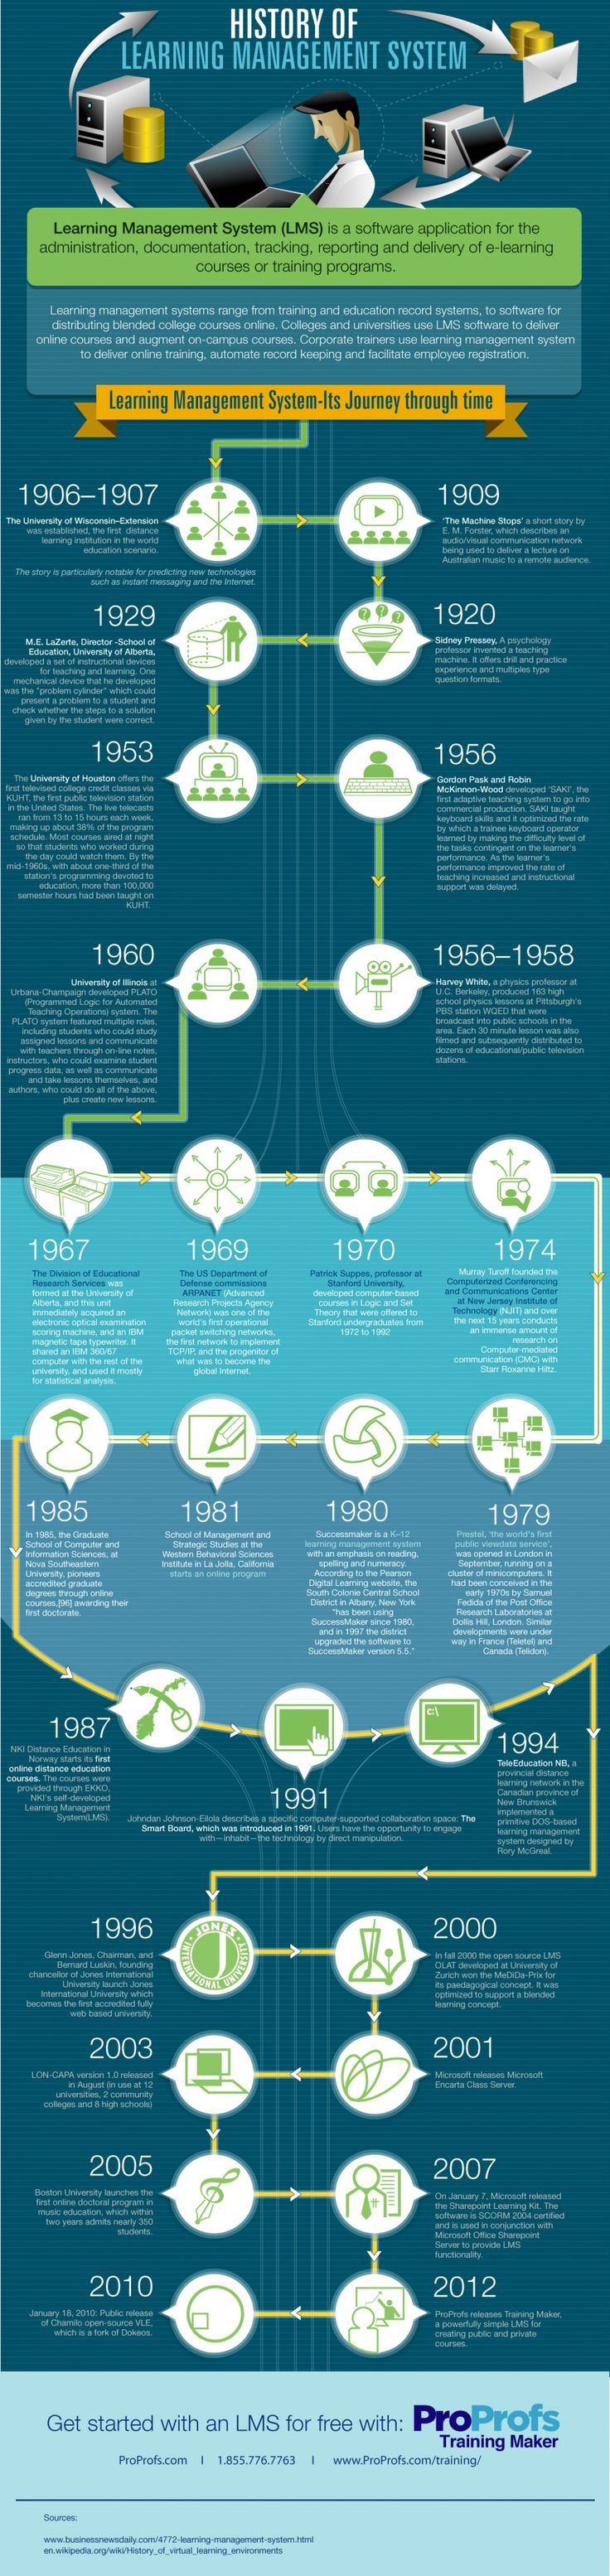 History of Learning Management System #LMS #eLearning